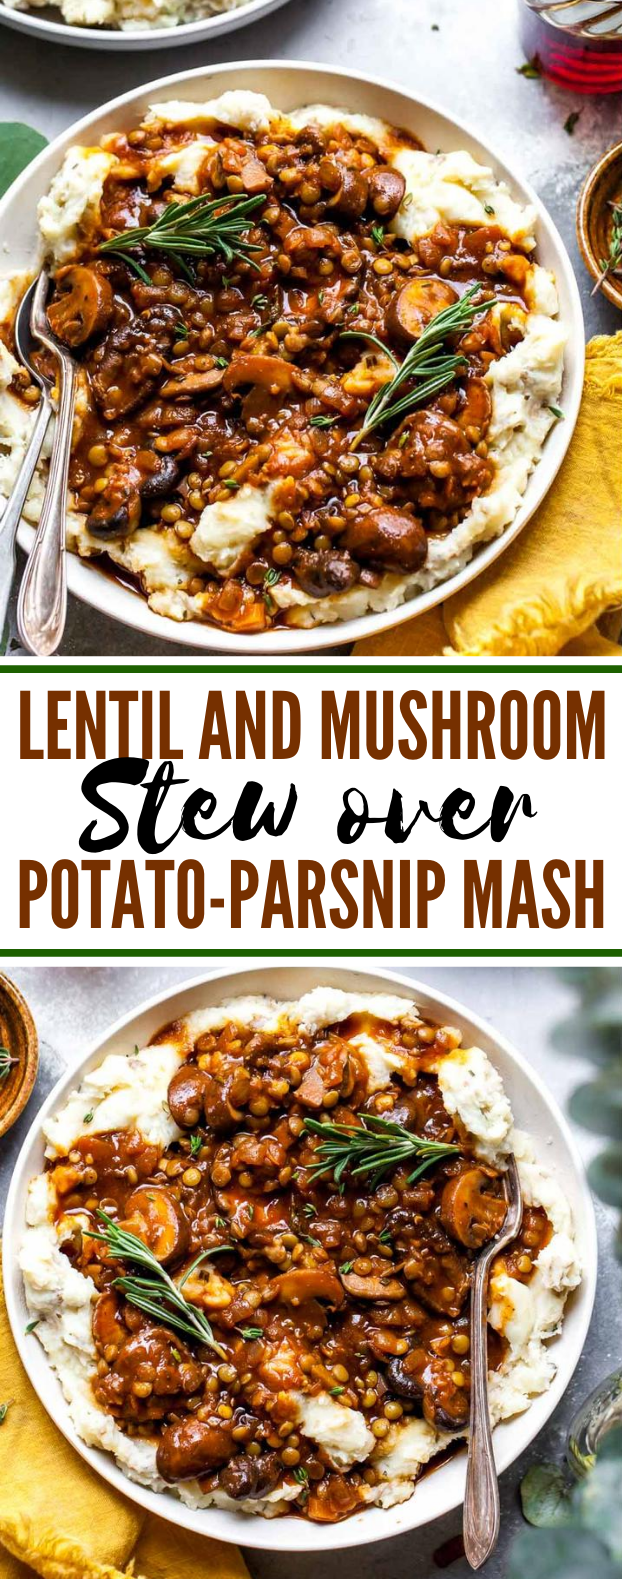 LENTIL AND MUSHROOM STEW OVER POTATO-PARSNIP MASH #vegetarian #dinner #potato #mushroom #meals